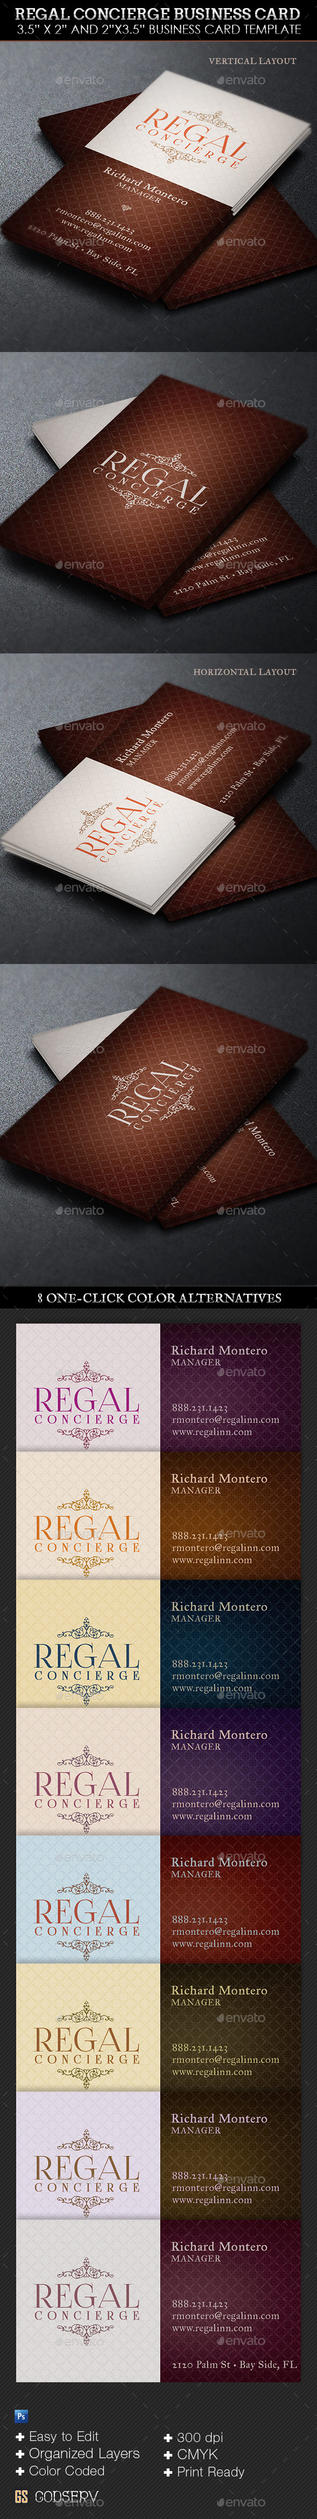 Regal Concierge Business Card Template by Godserv